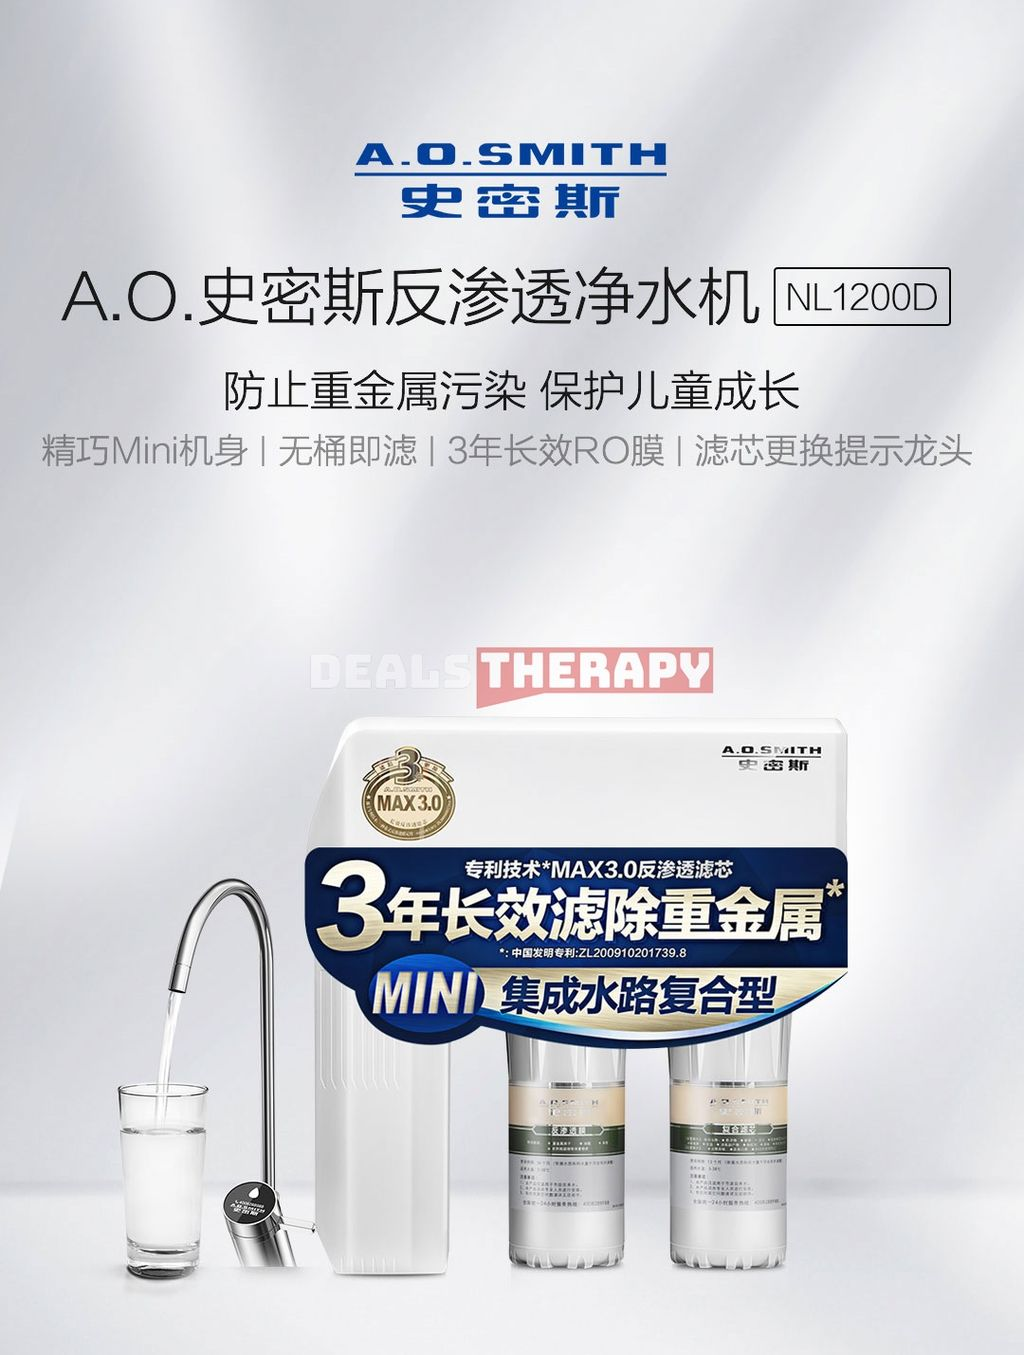 A.O. Smith Mini Body Water Purifier Gray 1L/min Water Flow